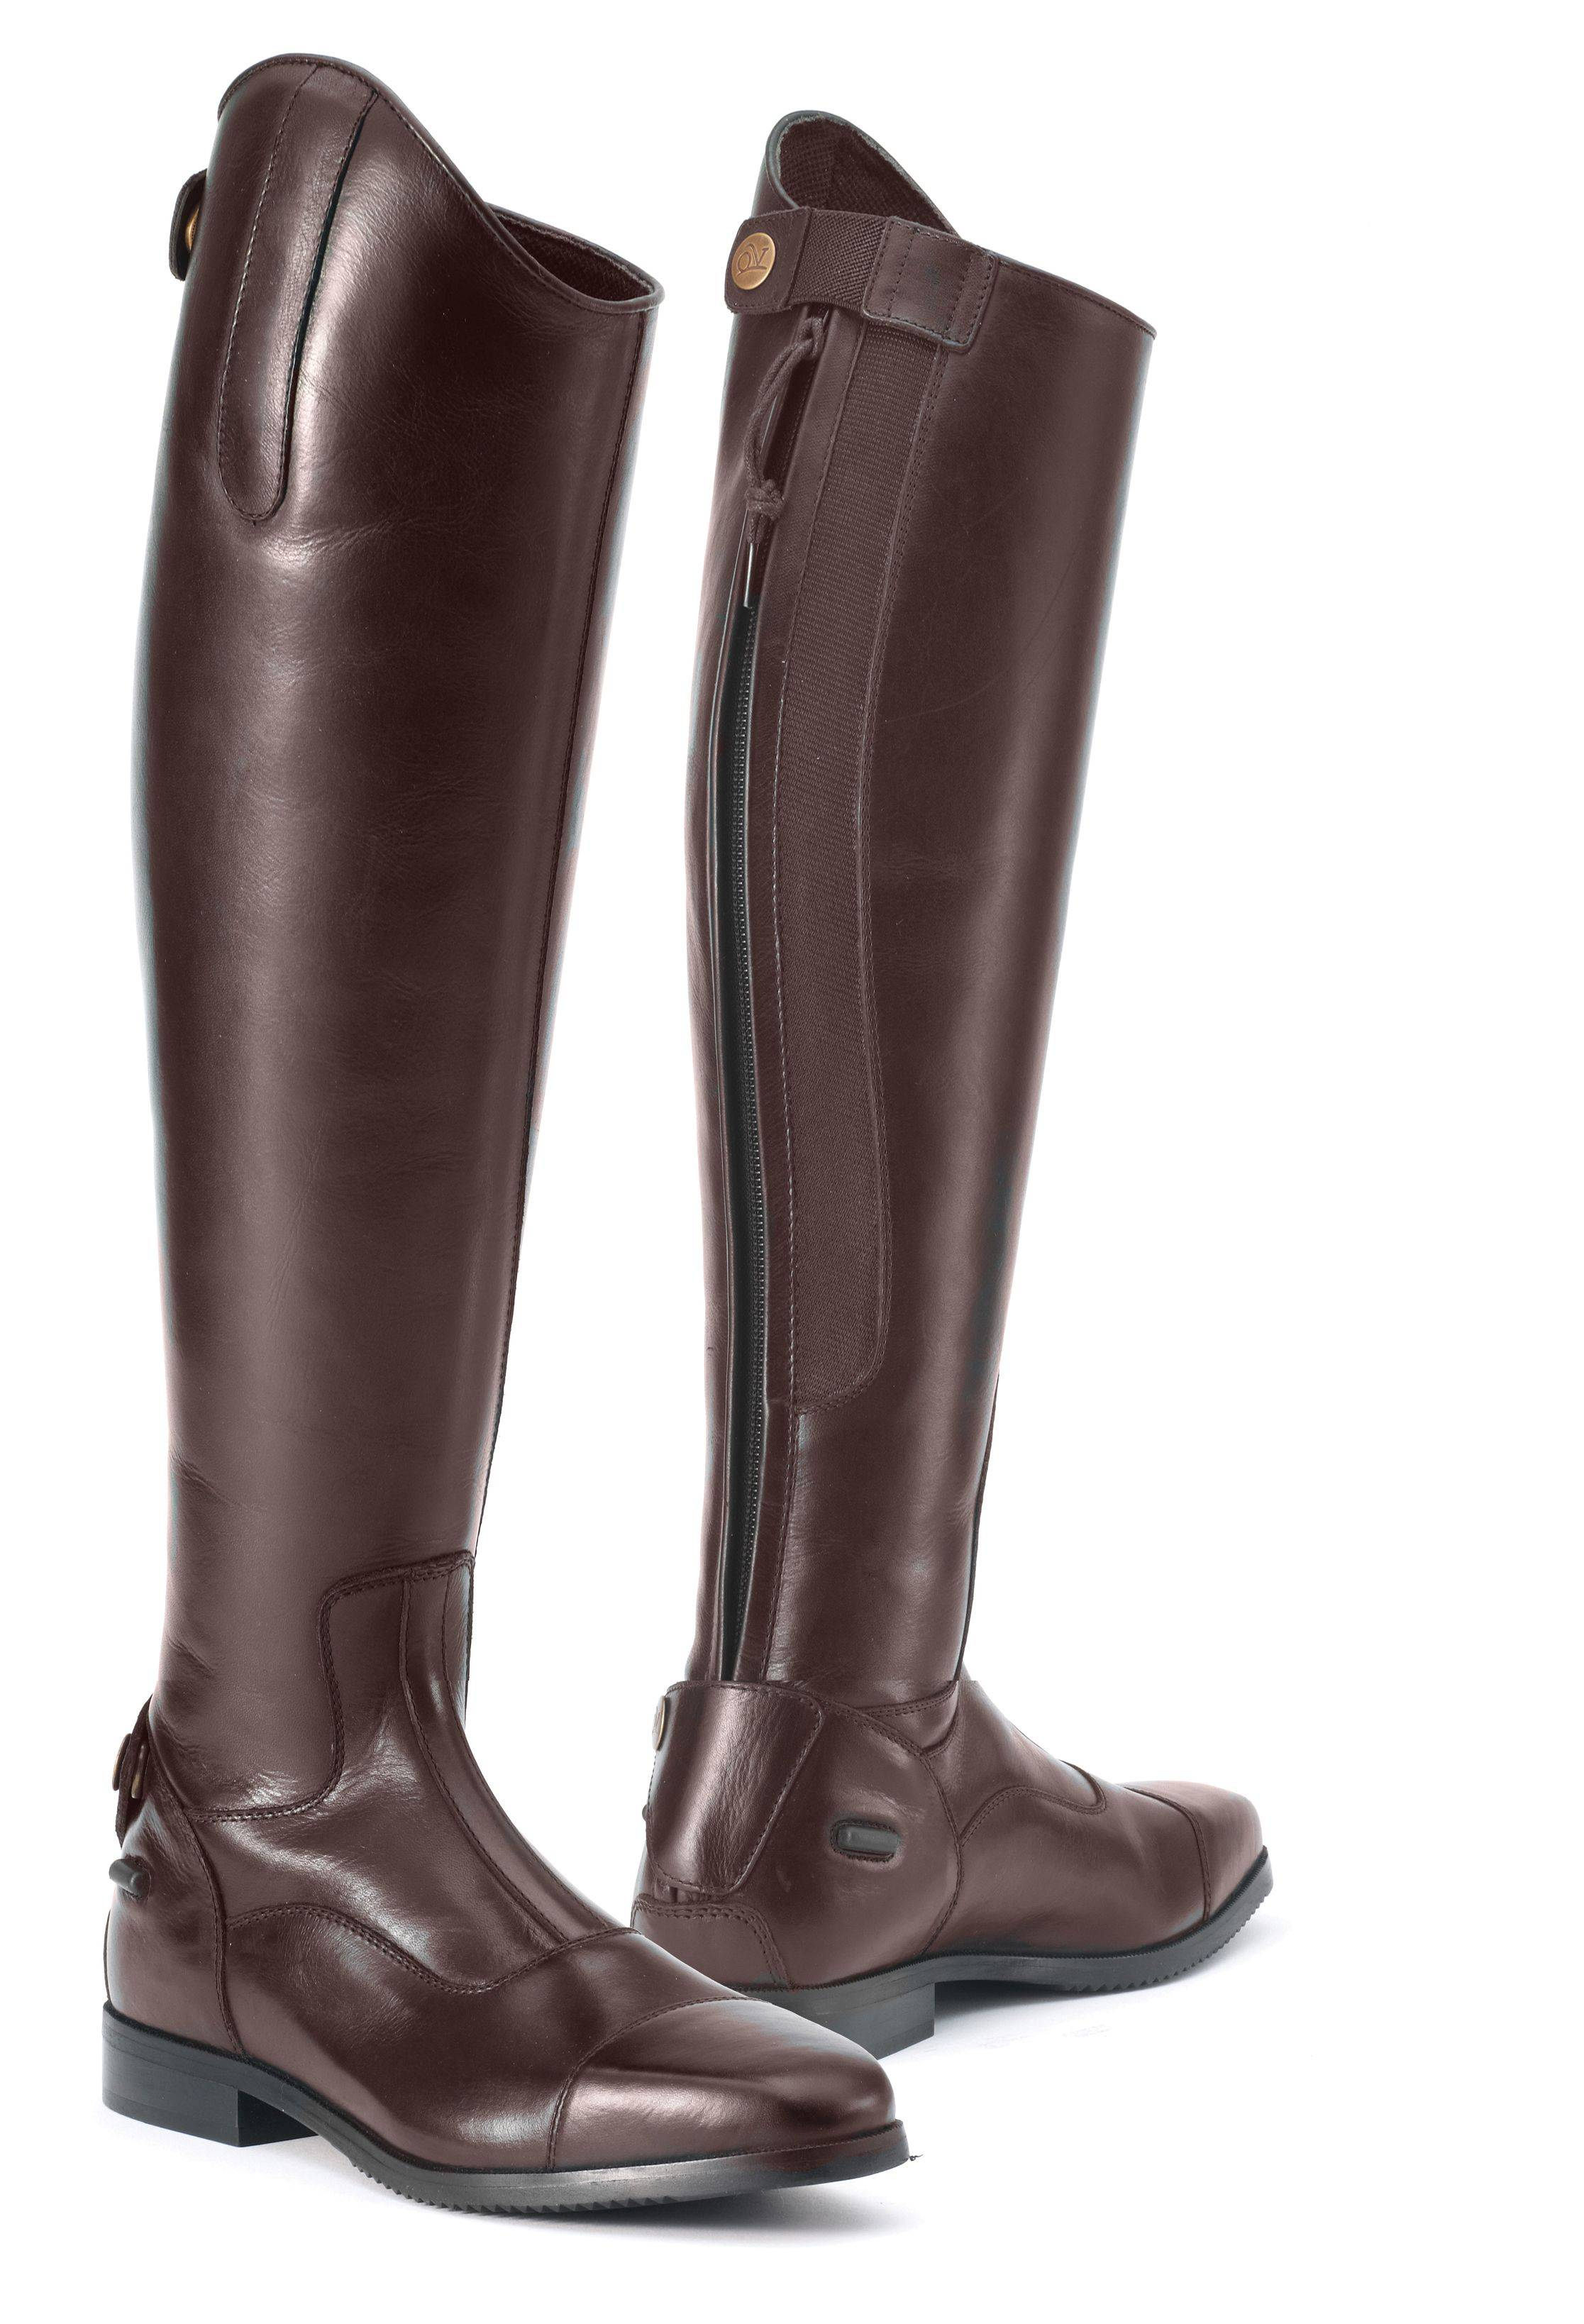 Ovation Ladies' Olympia Tall Boots